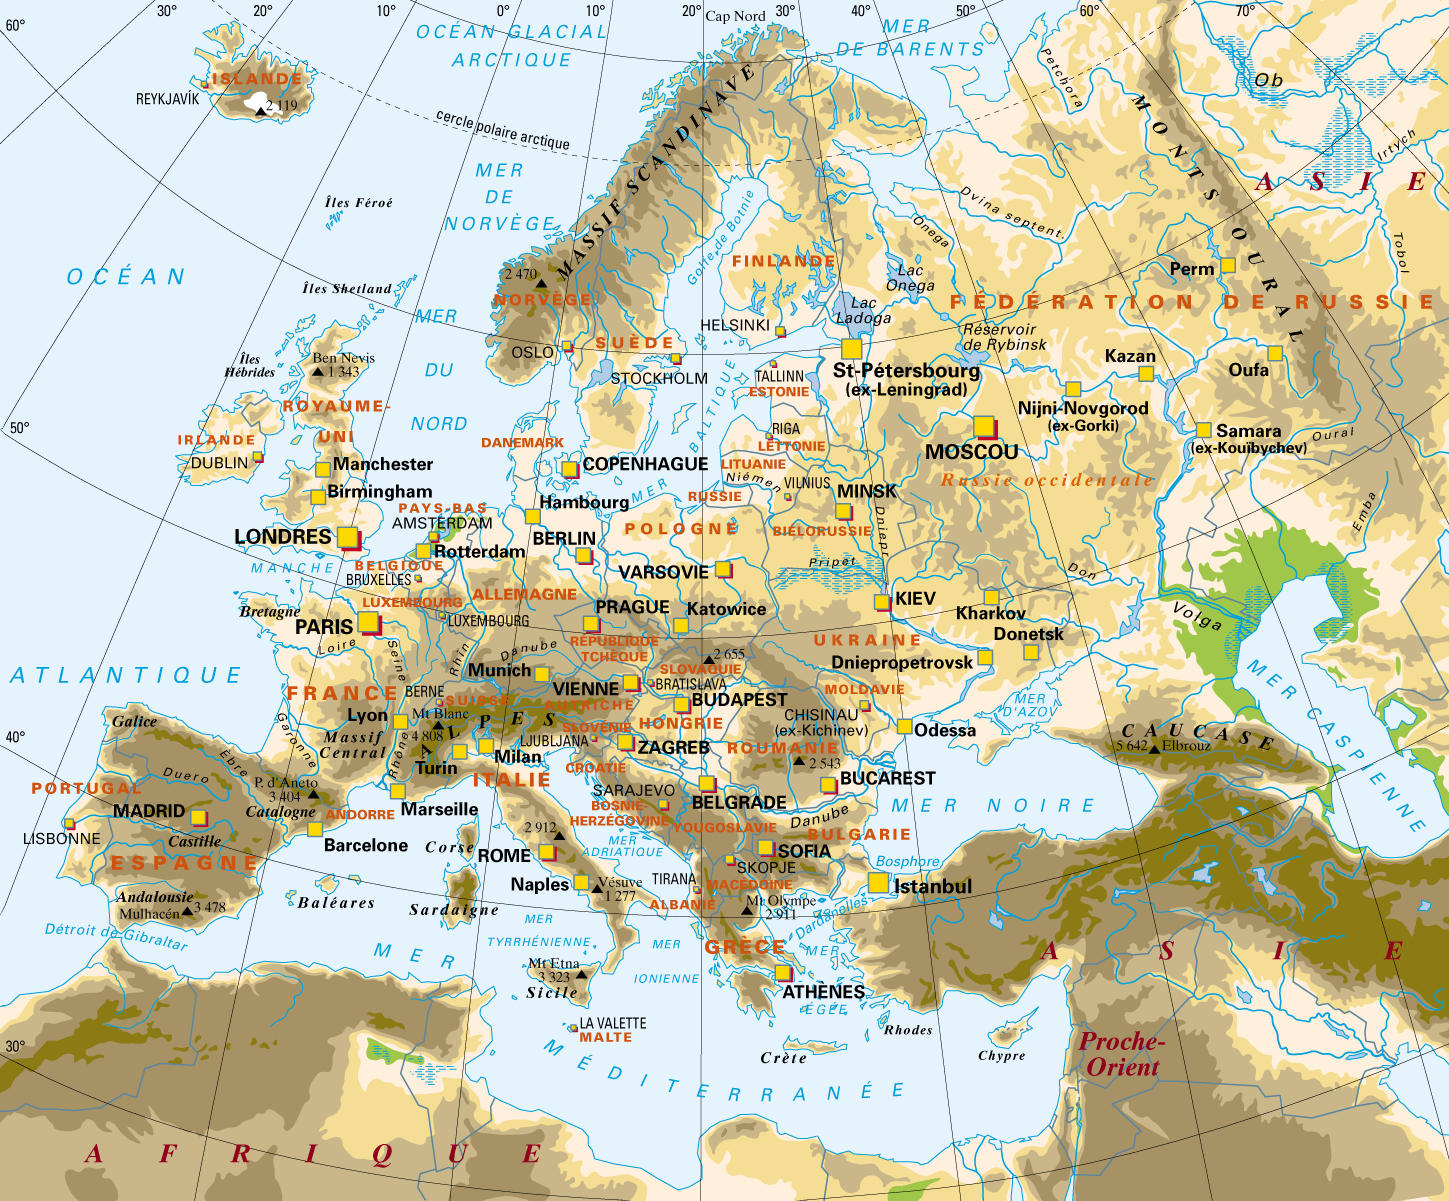 Carte Europe Avec Meridiens.Www Mappi Net Maps Of Continent Europe